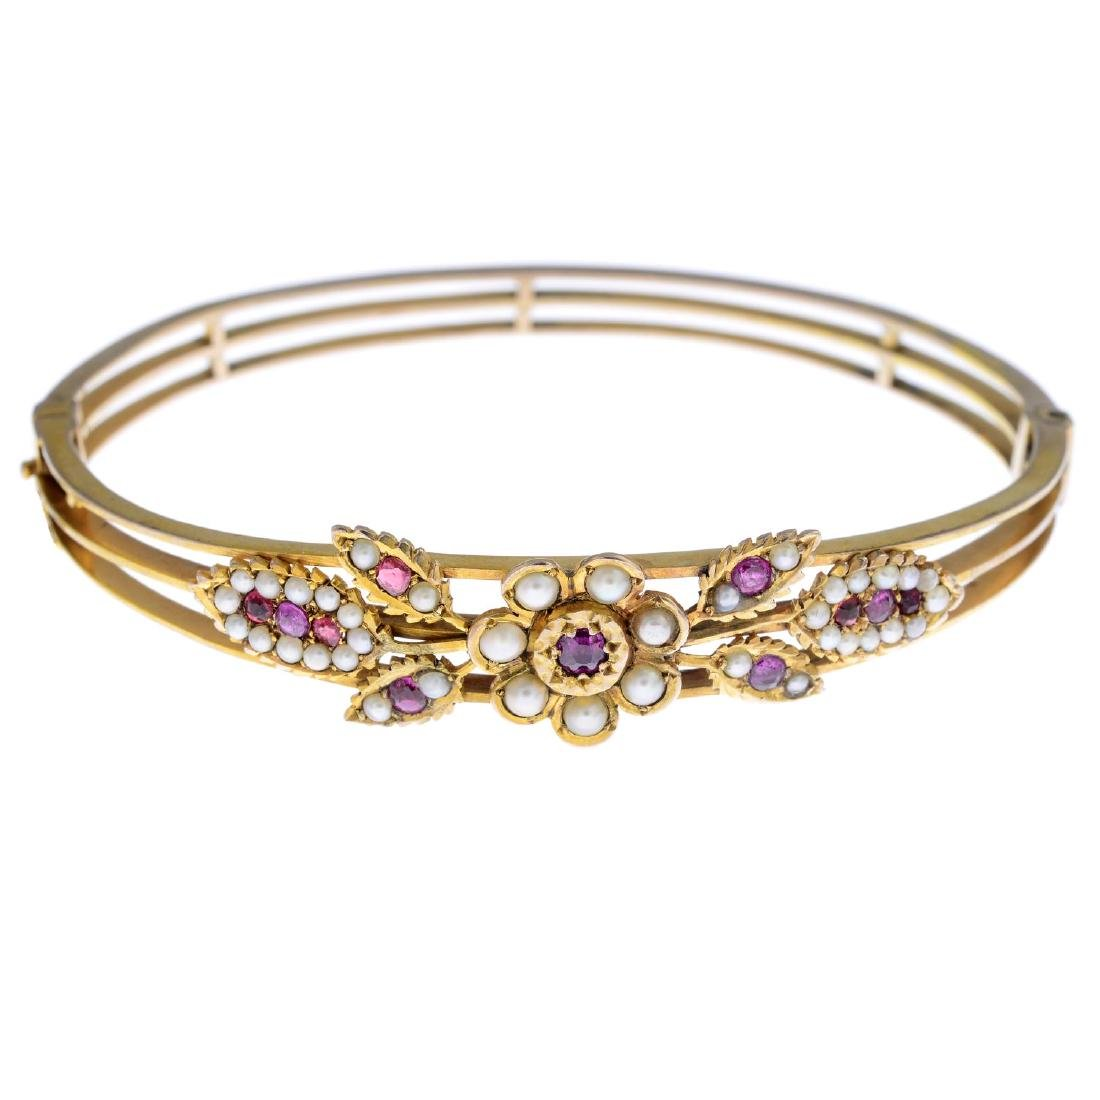 A ruby and split pearl hinged bangle. Designed as a